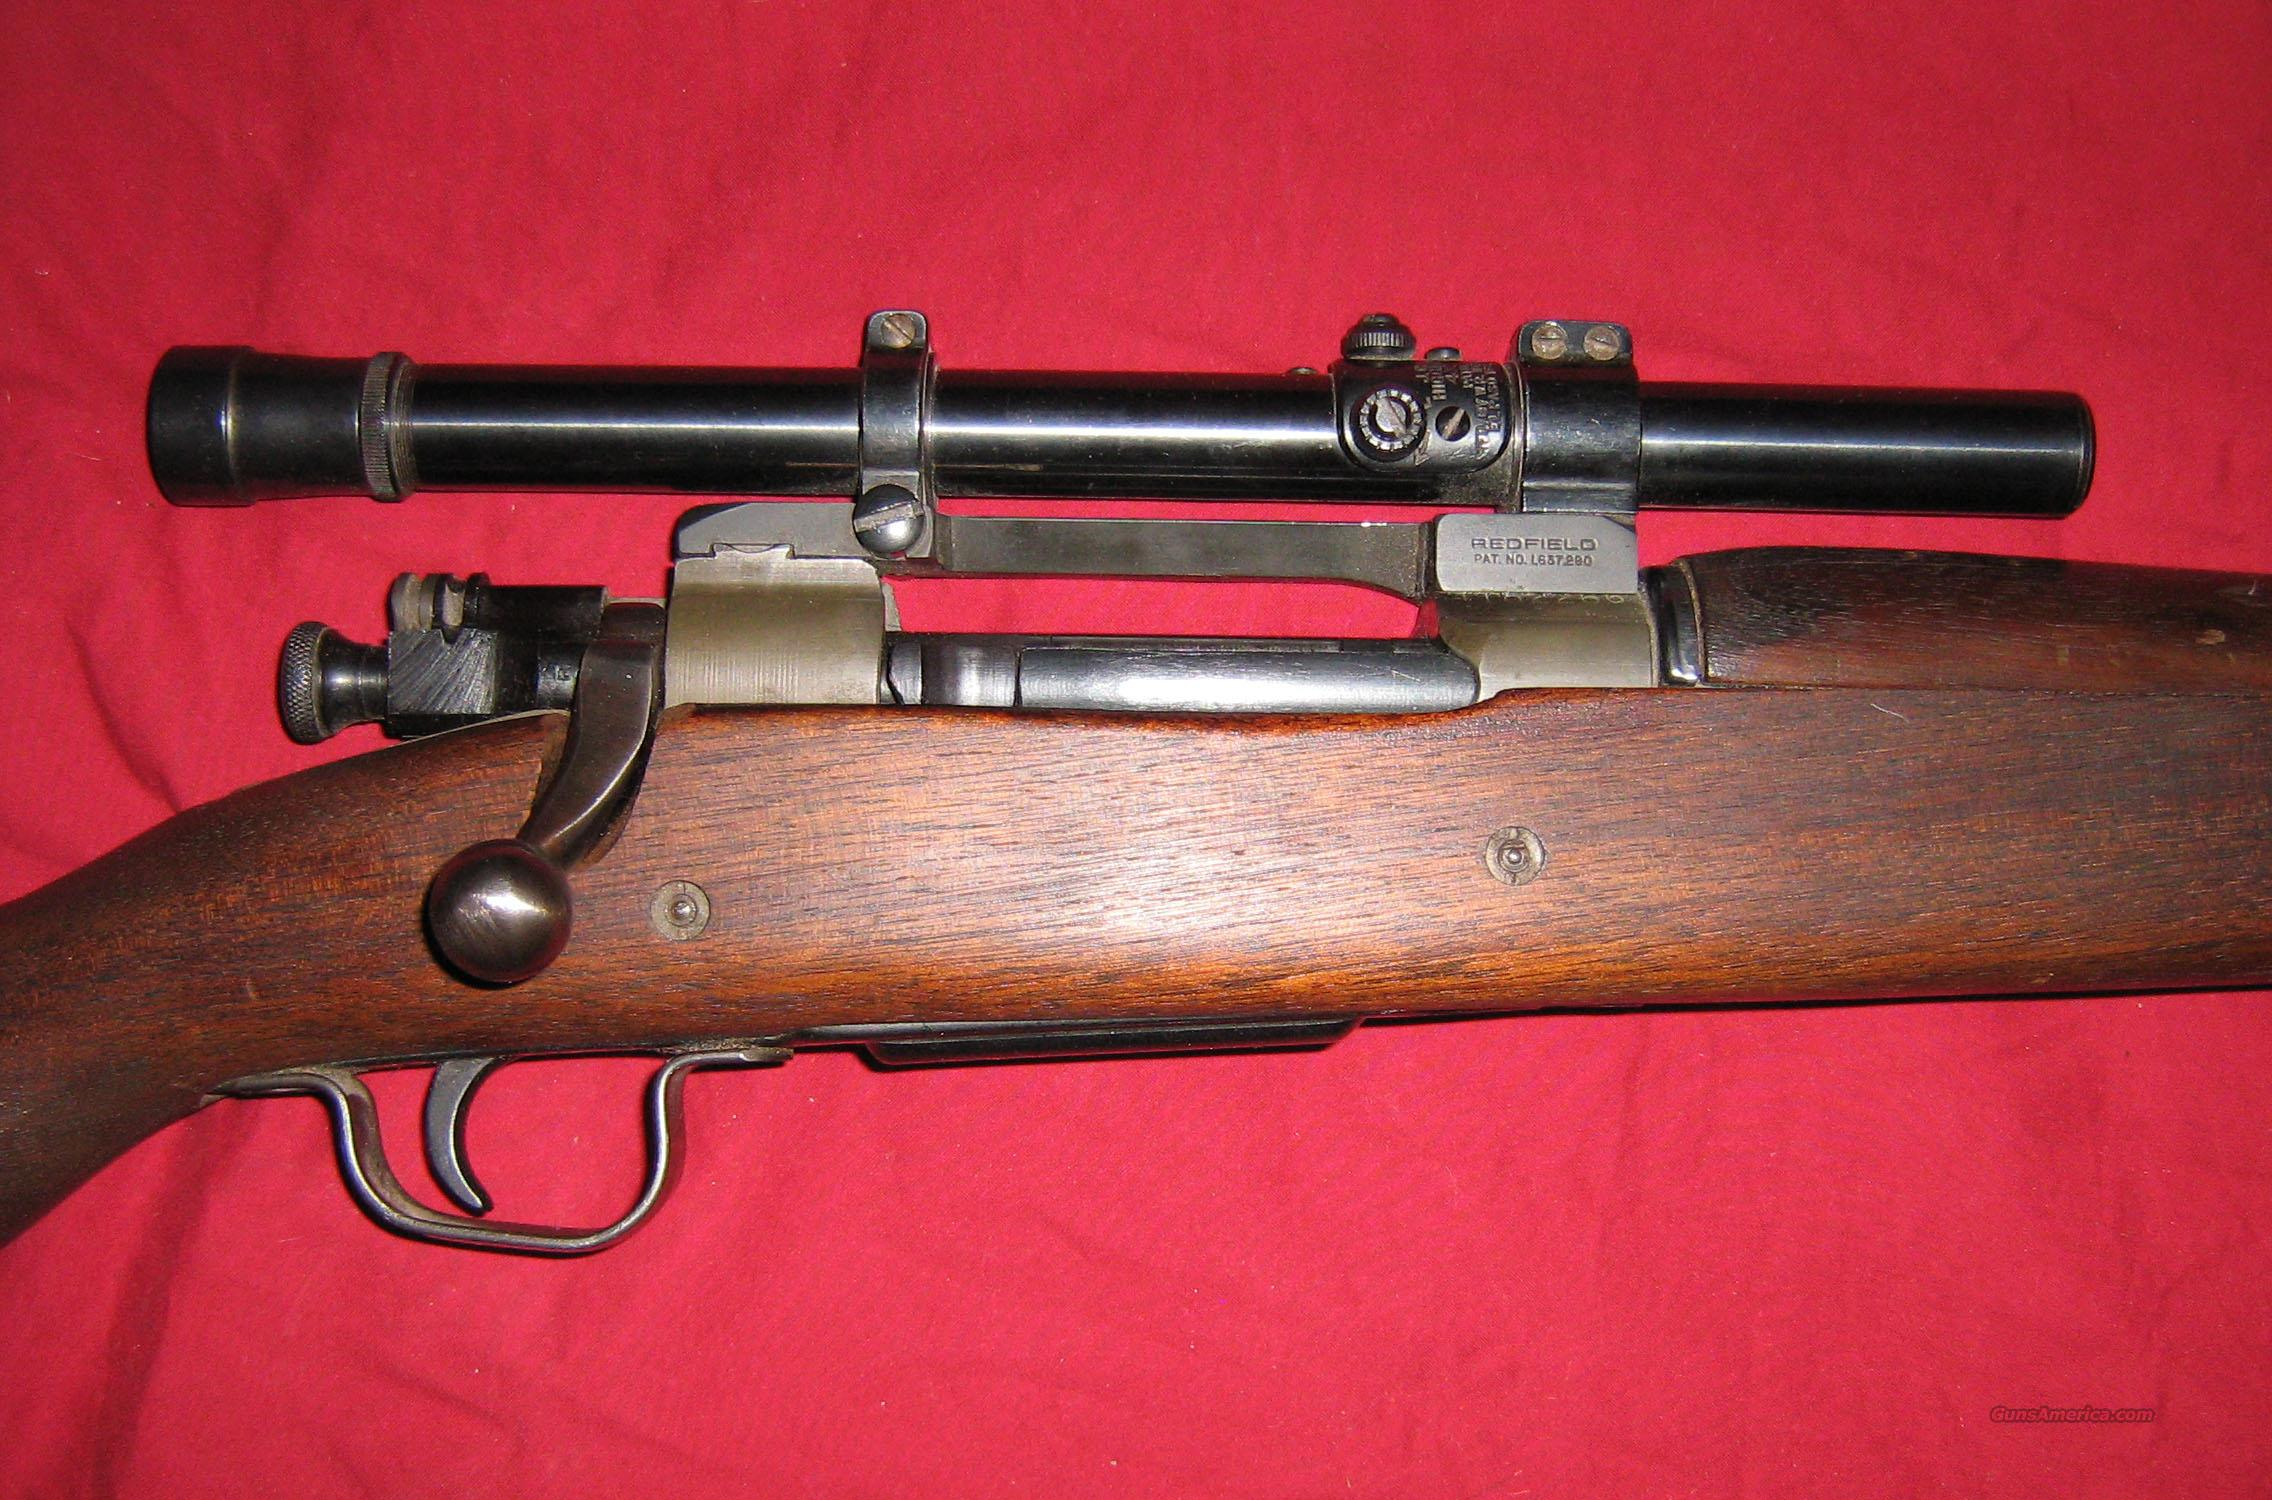 1903 1903a4 1903-A4 Springfield Sniper Rifle COPY  Guns > Rifles > Surplus Rifles & Copies